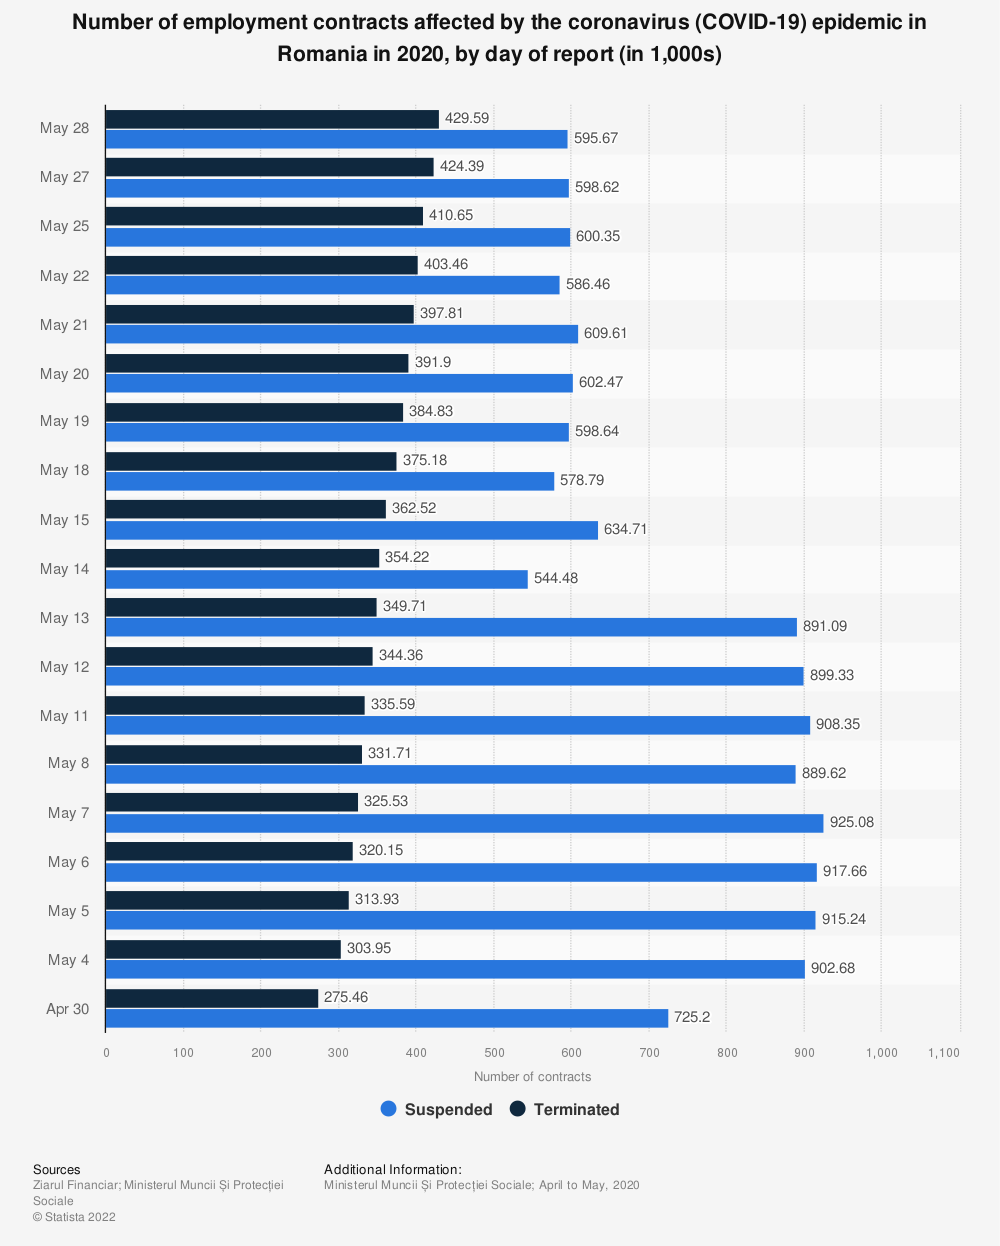 Statistic: Number of employment contracts affected by the coronavirus (COVID-19) epidemic in Romania in 2020, by day of report (in 1,000s) | Statista